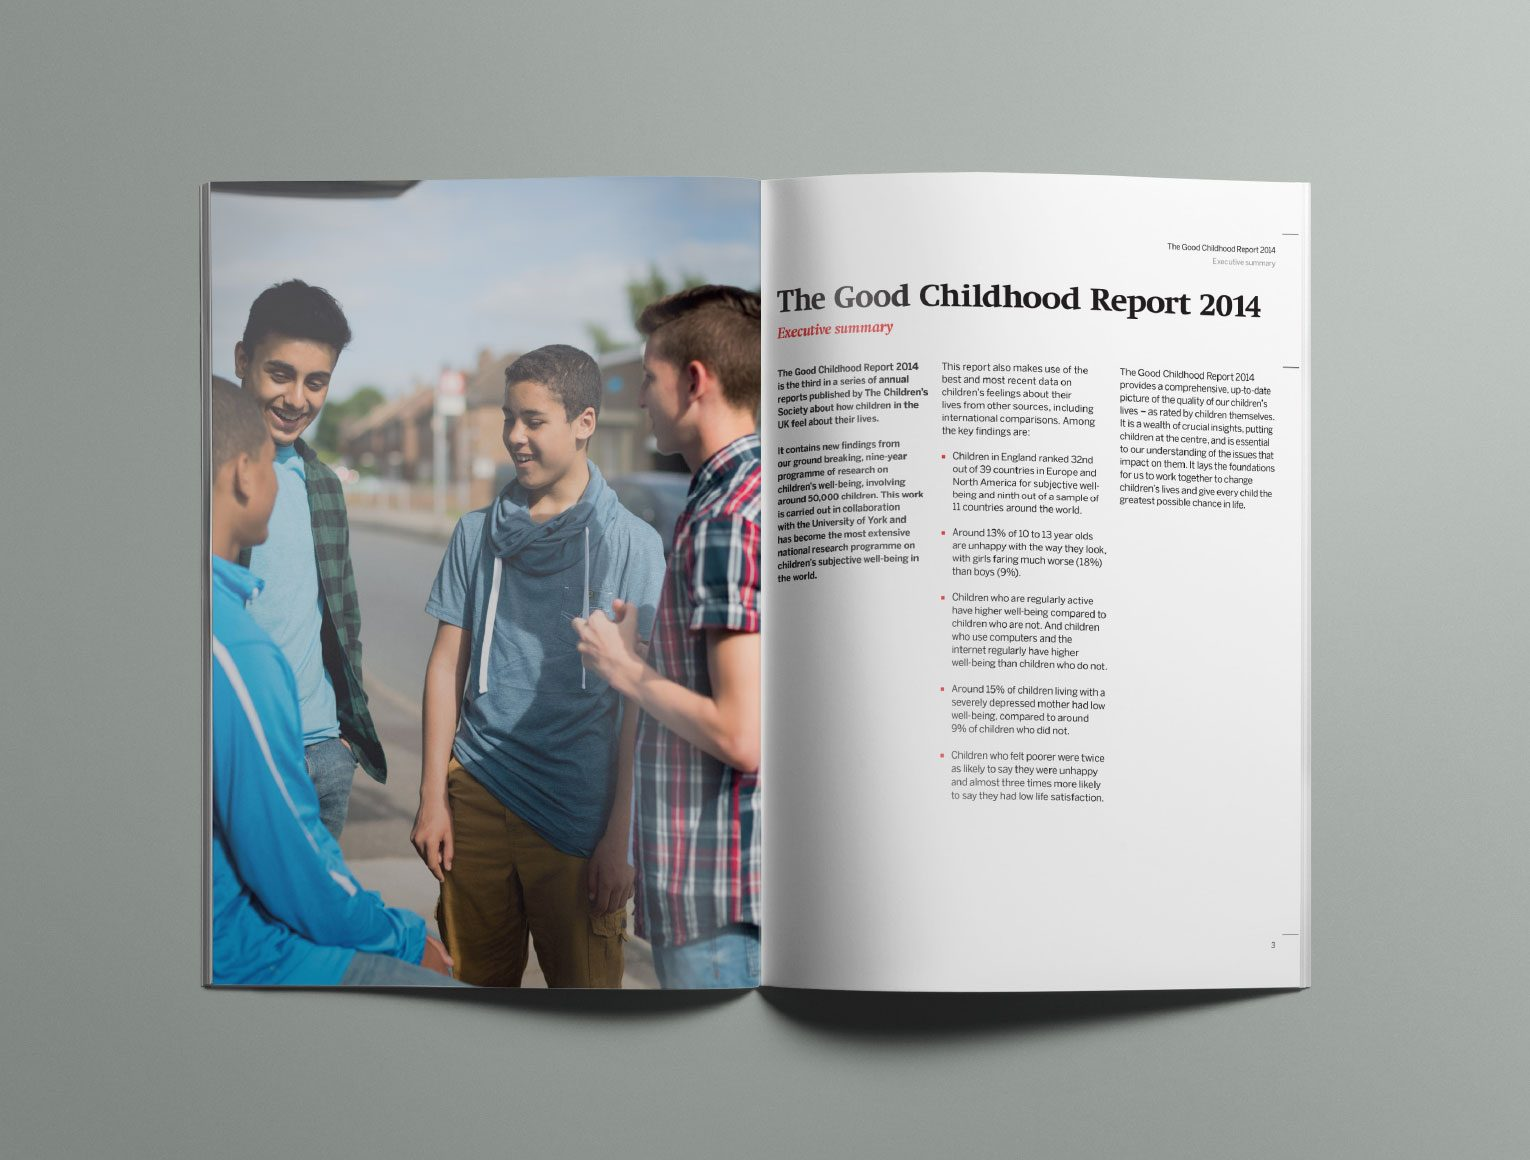 Research report executive summary spread from The Good Childhood Report.